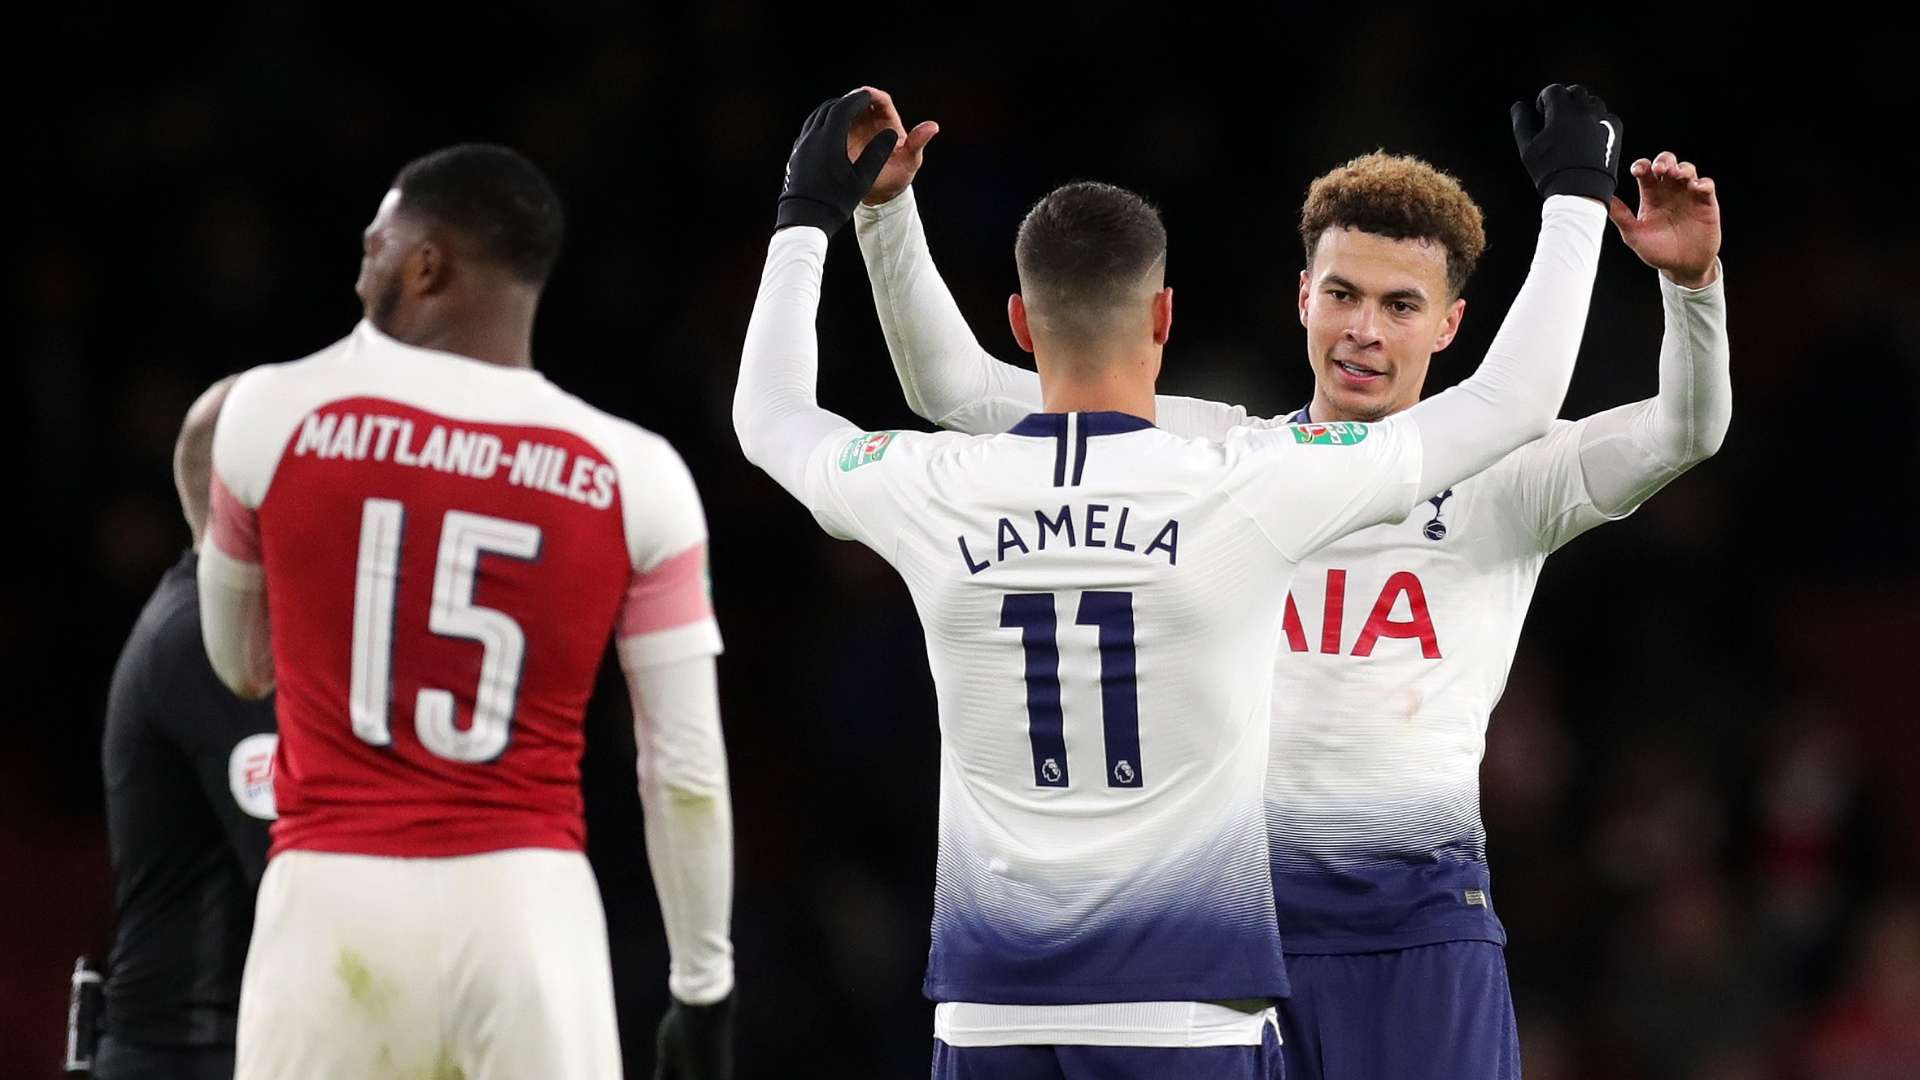 Arsenal 0-2 Tottenham: All eyes on Emery for Ozil omission, but Gunners' concerns don't stop there | Goal.com